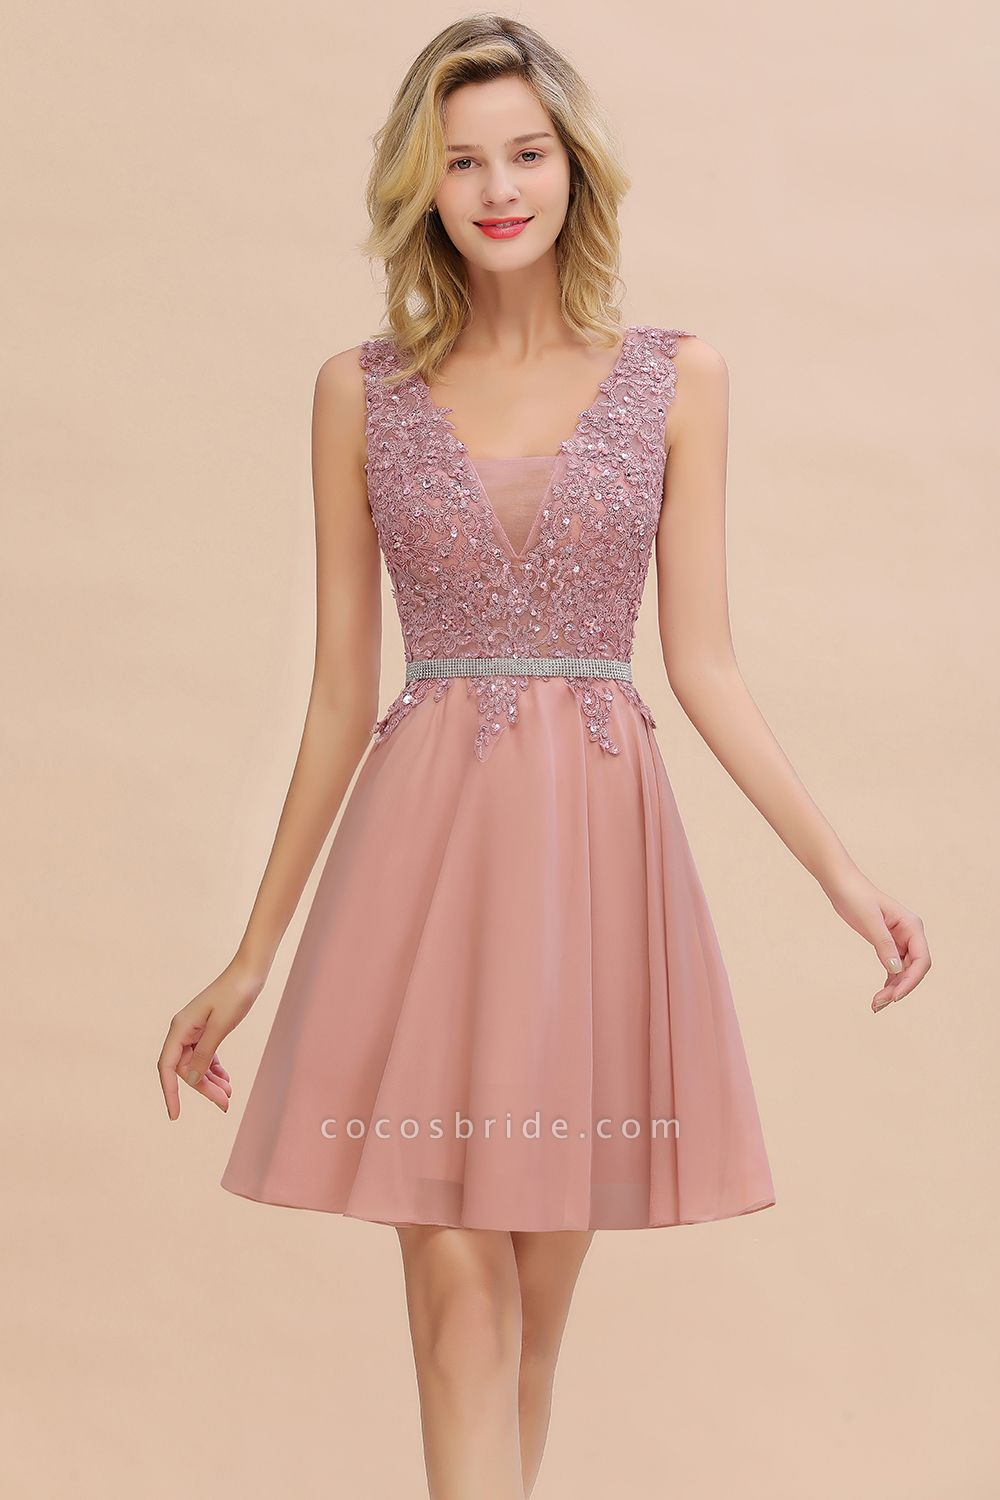 Cute Deep V-neck Short Homecoming Dress with Beaded Belt